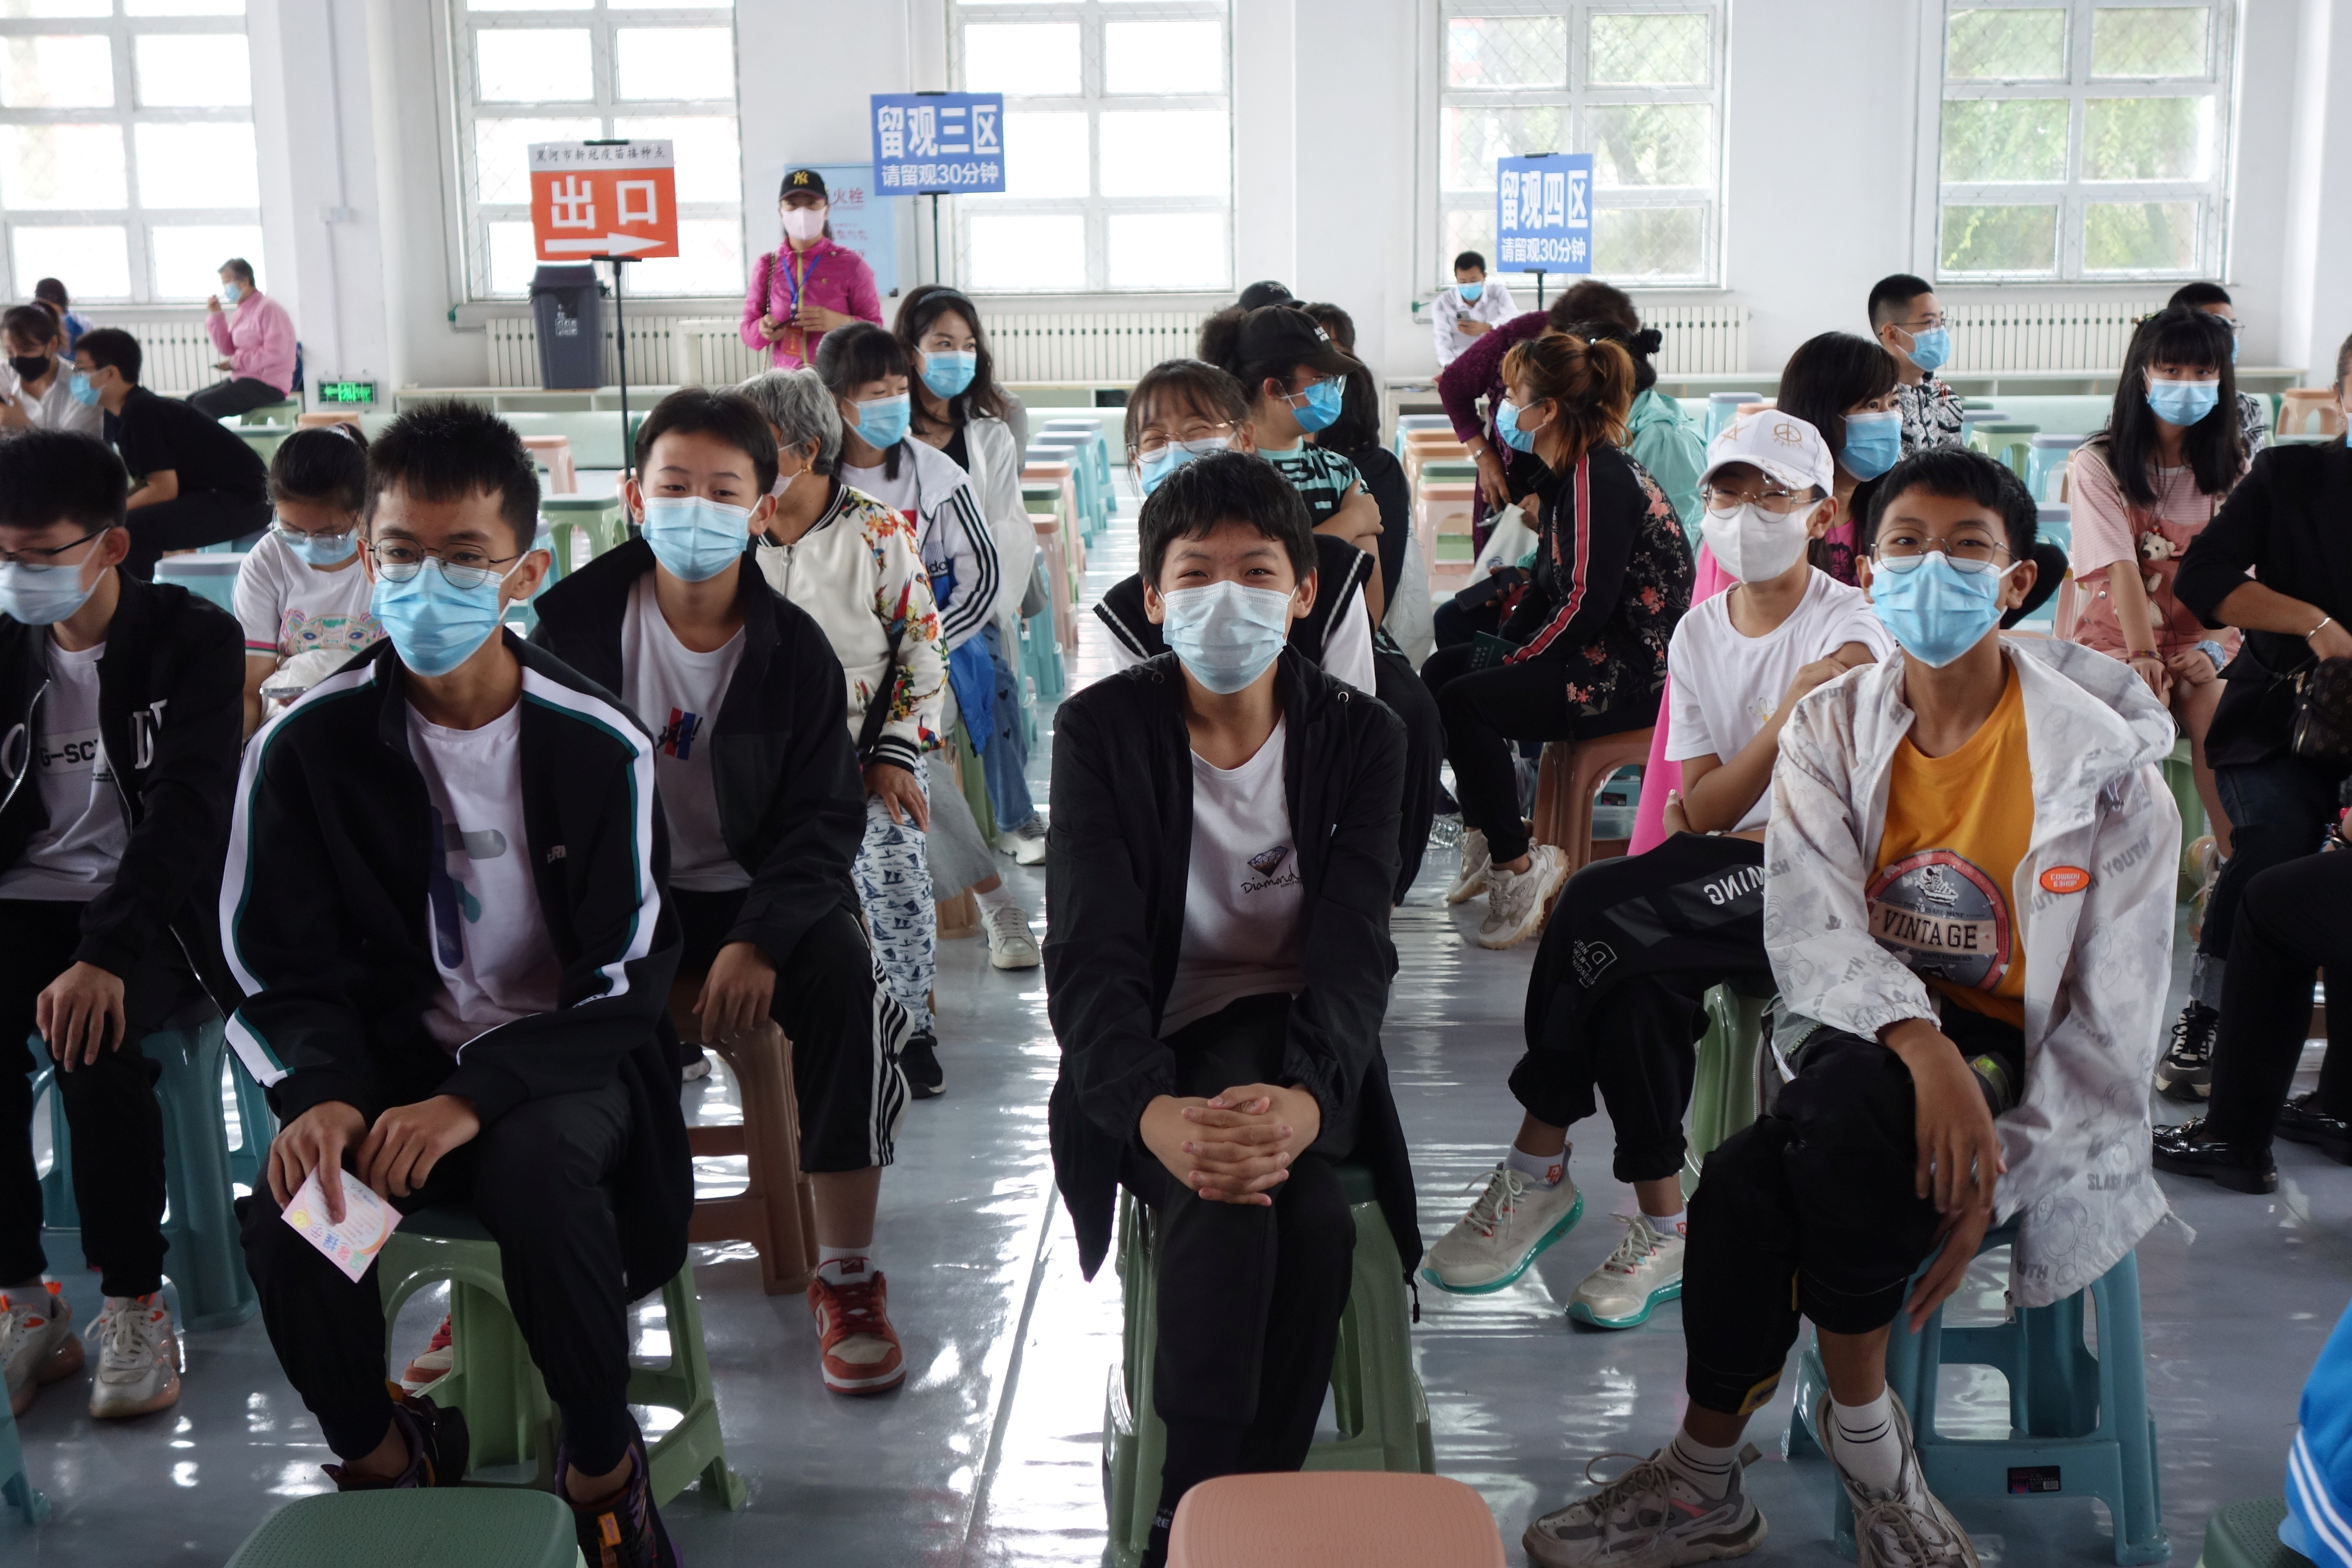 Residents wait at the observation area during a coronavirus disease (COVID-19) vaccination session for those aged between 12 and 14, in Heihe, Heilongjiang province, China August 3, 2021. China Daily via REUTERS